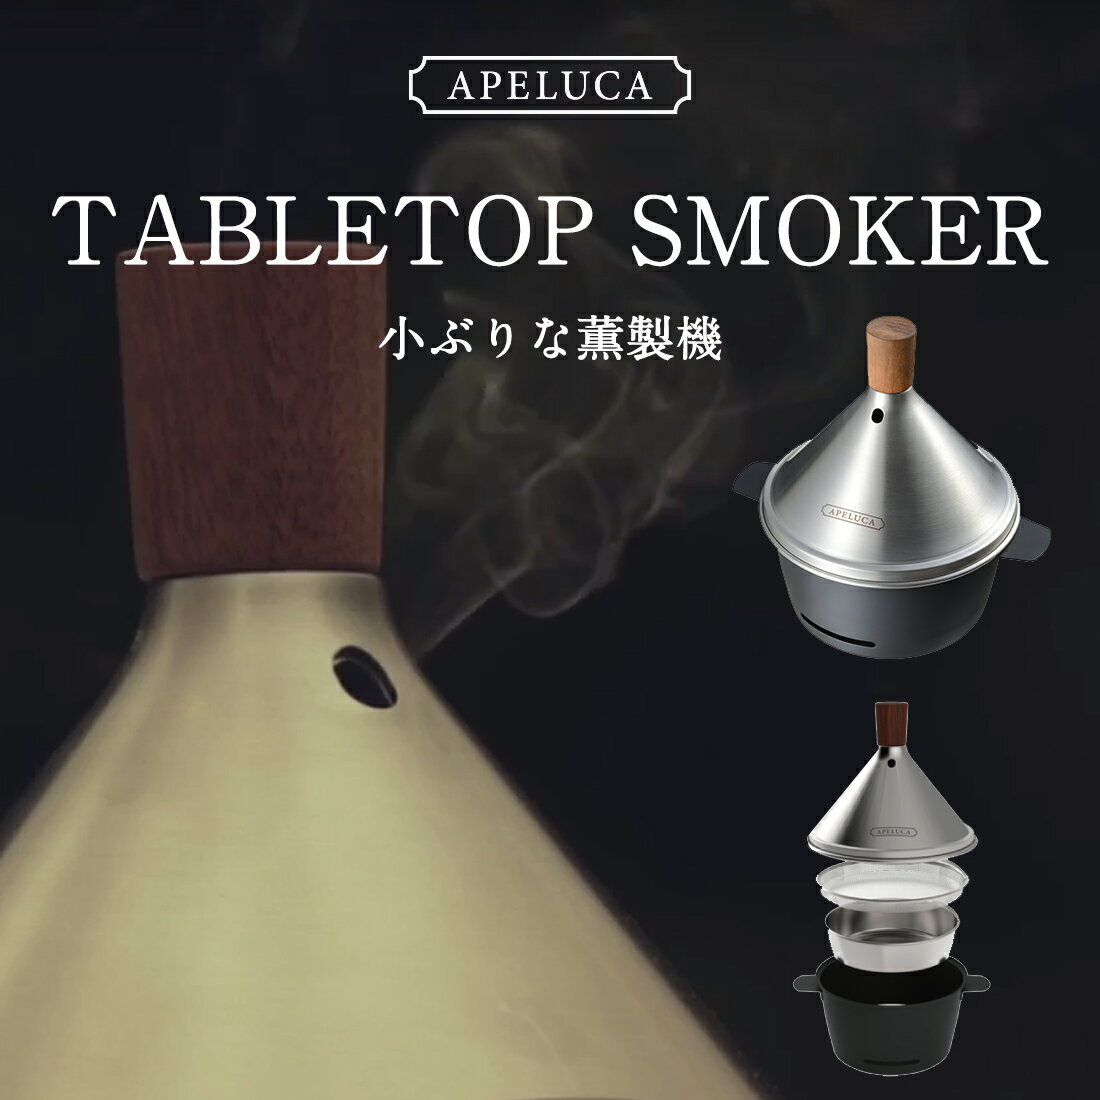 【APELUCA/アペルカ】TABLETOP SMOKER 燻製器くんせい スモーカー レシピ付き キッチン コンパクト【コンビニ受取対応商品】【RCP】